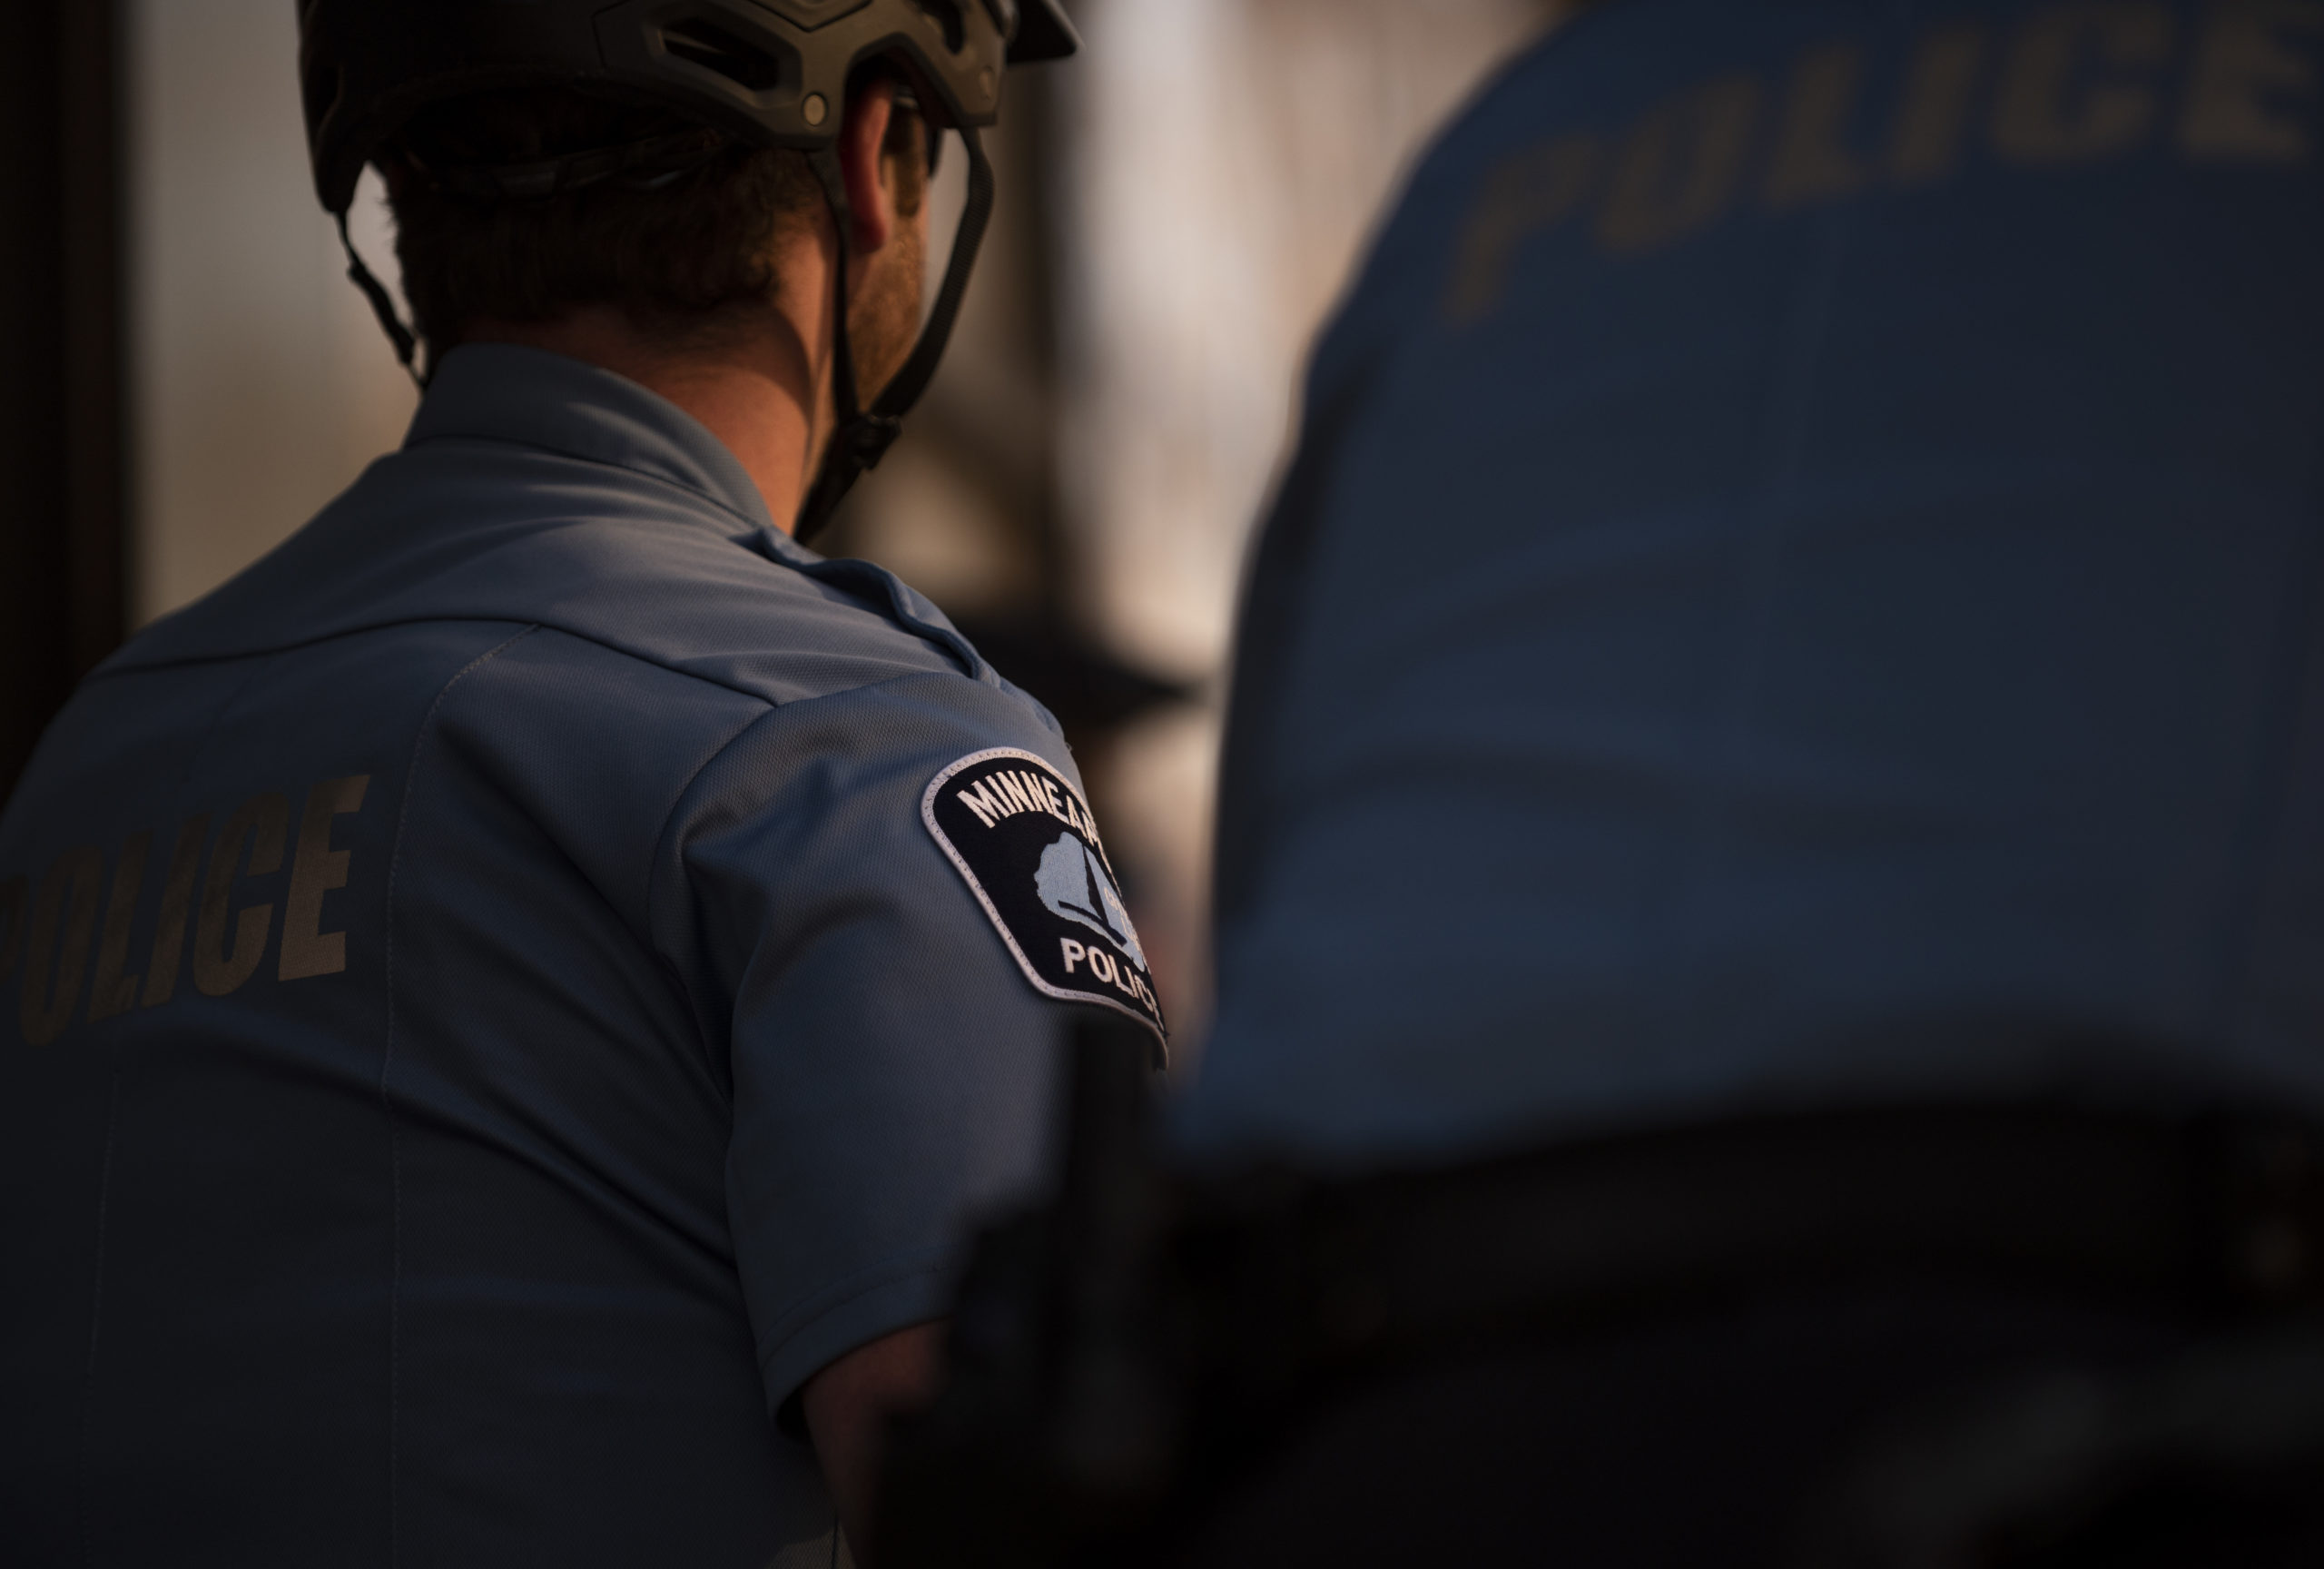 Members of the Minneapolis Police Department monitor a protest on June 11, 2020 in Minneapolis, Minnesota. The MPD has been under scrutiny from residents and local city officials after the death of George Floyd in police custody on May 25. (Photo by Stephen Maturen/Getty Images)